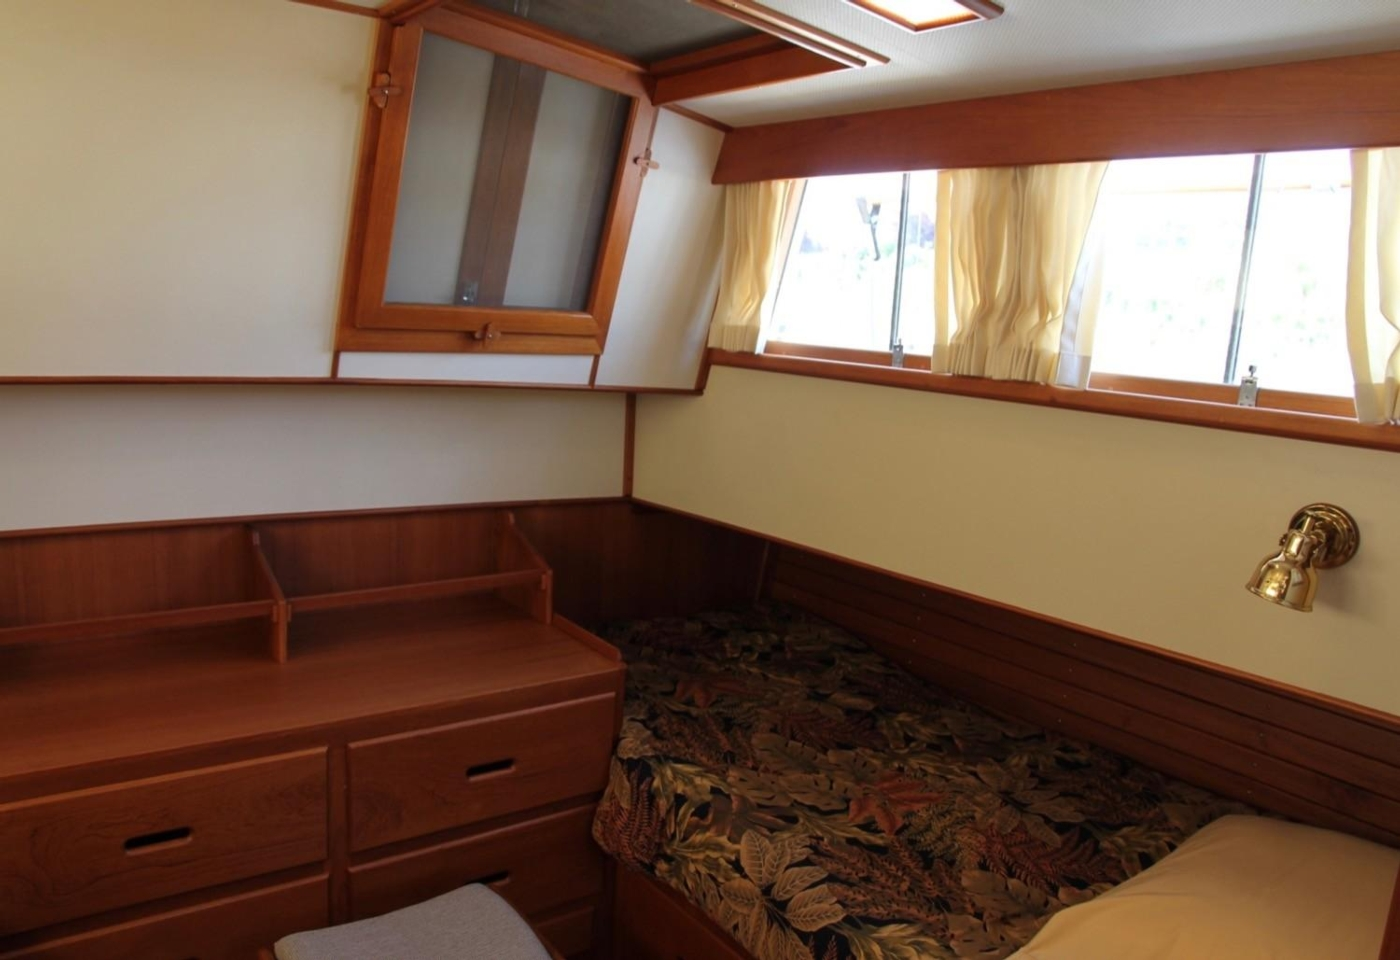 1995 Grand Banks Classic, Aft Cabin Port